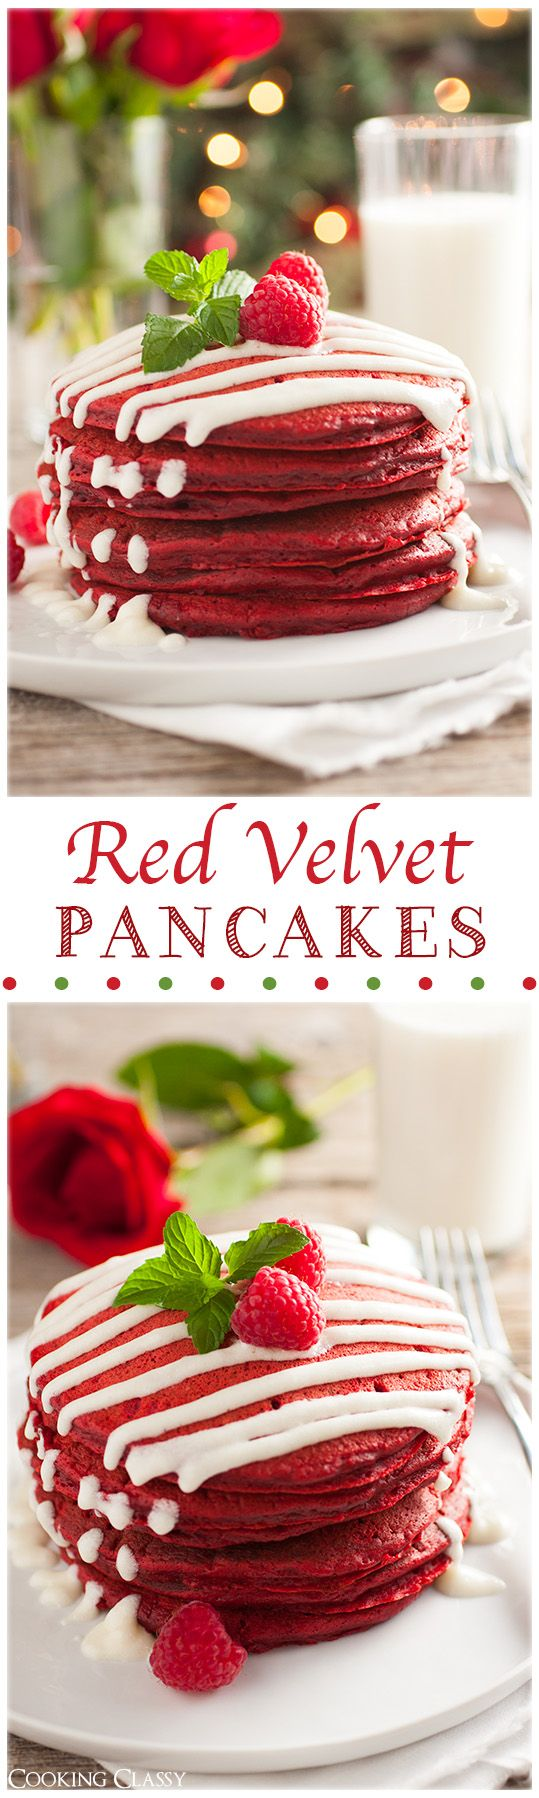 Festive red velvet pancakes are a great choice for Christmas morning! Make it a holly, jolly Christmas with us at Walgreens.com!